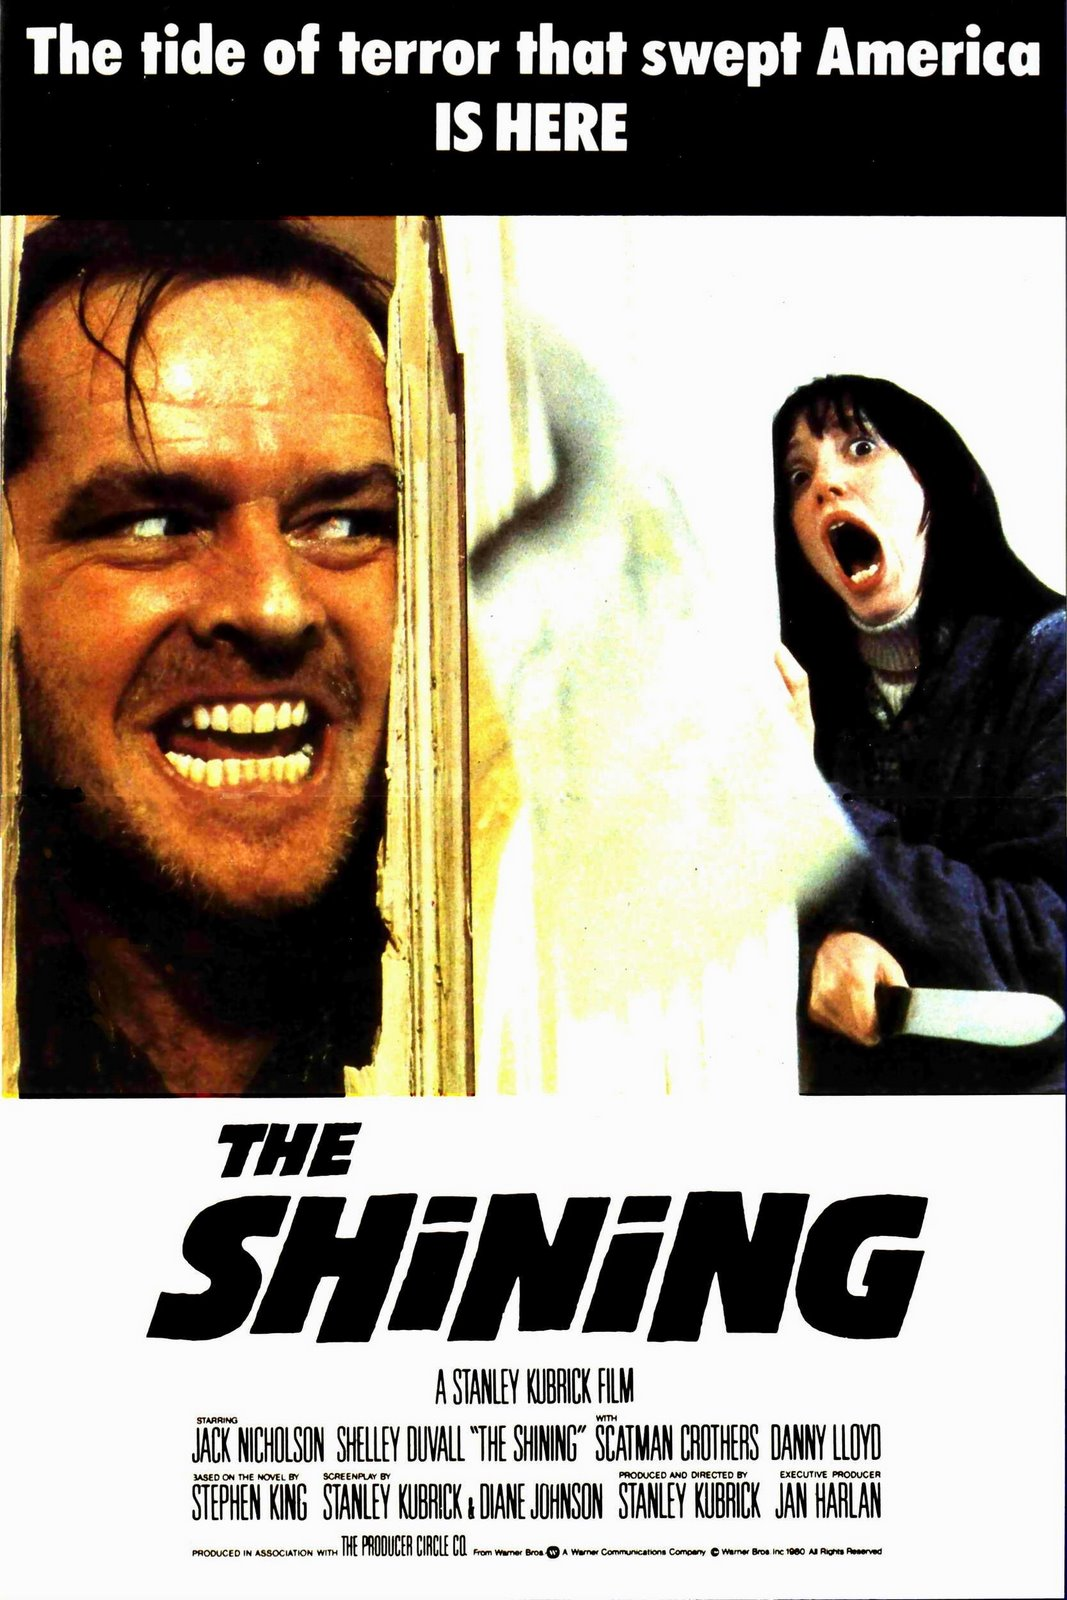 The Shining (1980) - Directed by: Stanley KubrickStarring: Jack Nicholson, Shelley Duvall, Danny Lloyd, Scatman CrothersRated: RRunning Time: 2 h 26 mTMM Score: 5 stars out of 5STRENGTHS: Directing, Writing, Acting, Cinematography, AtmosphereWEAKNESSES: -